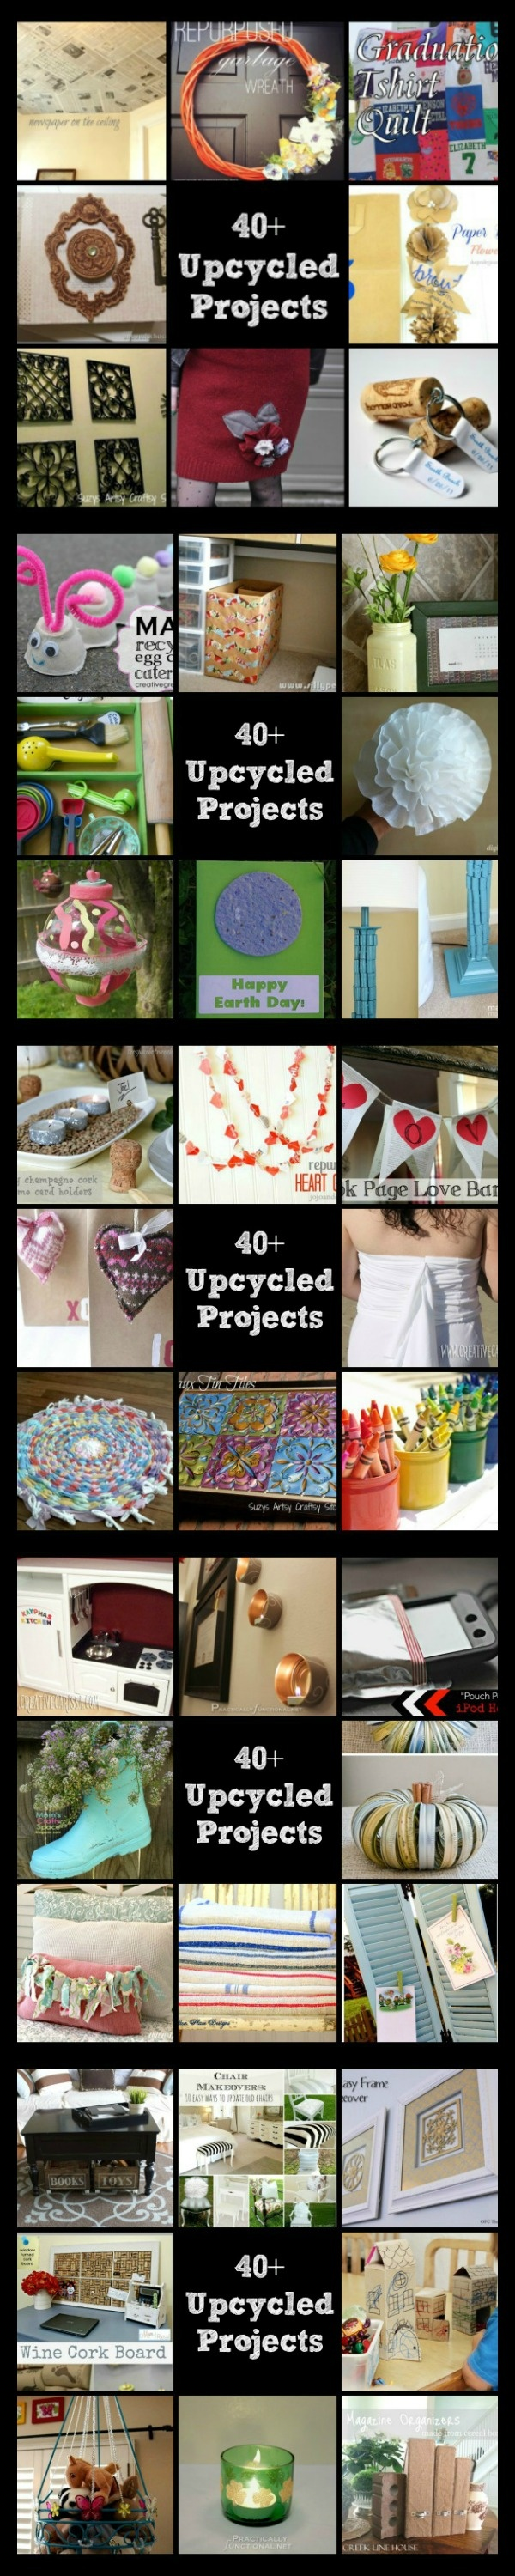 Over 40 upcycled and recycled projects to do-perfect for Earth Day or any day! Pin now, read later!